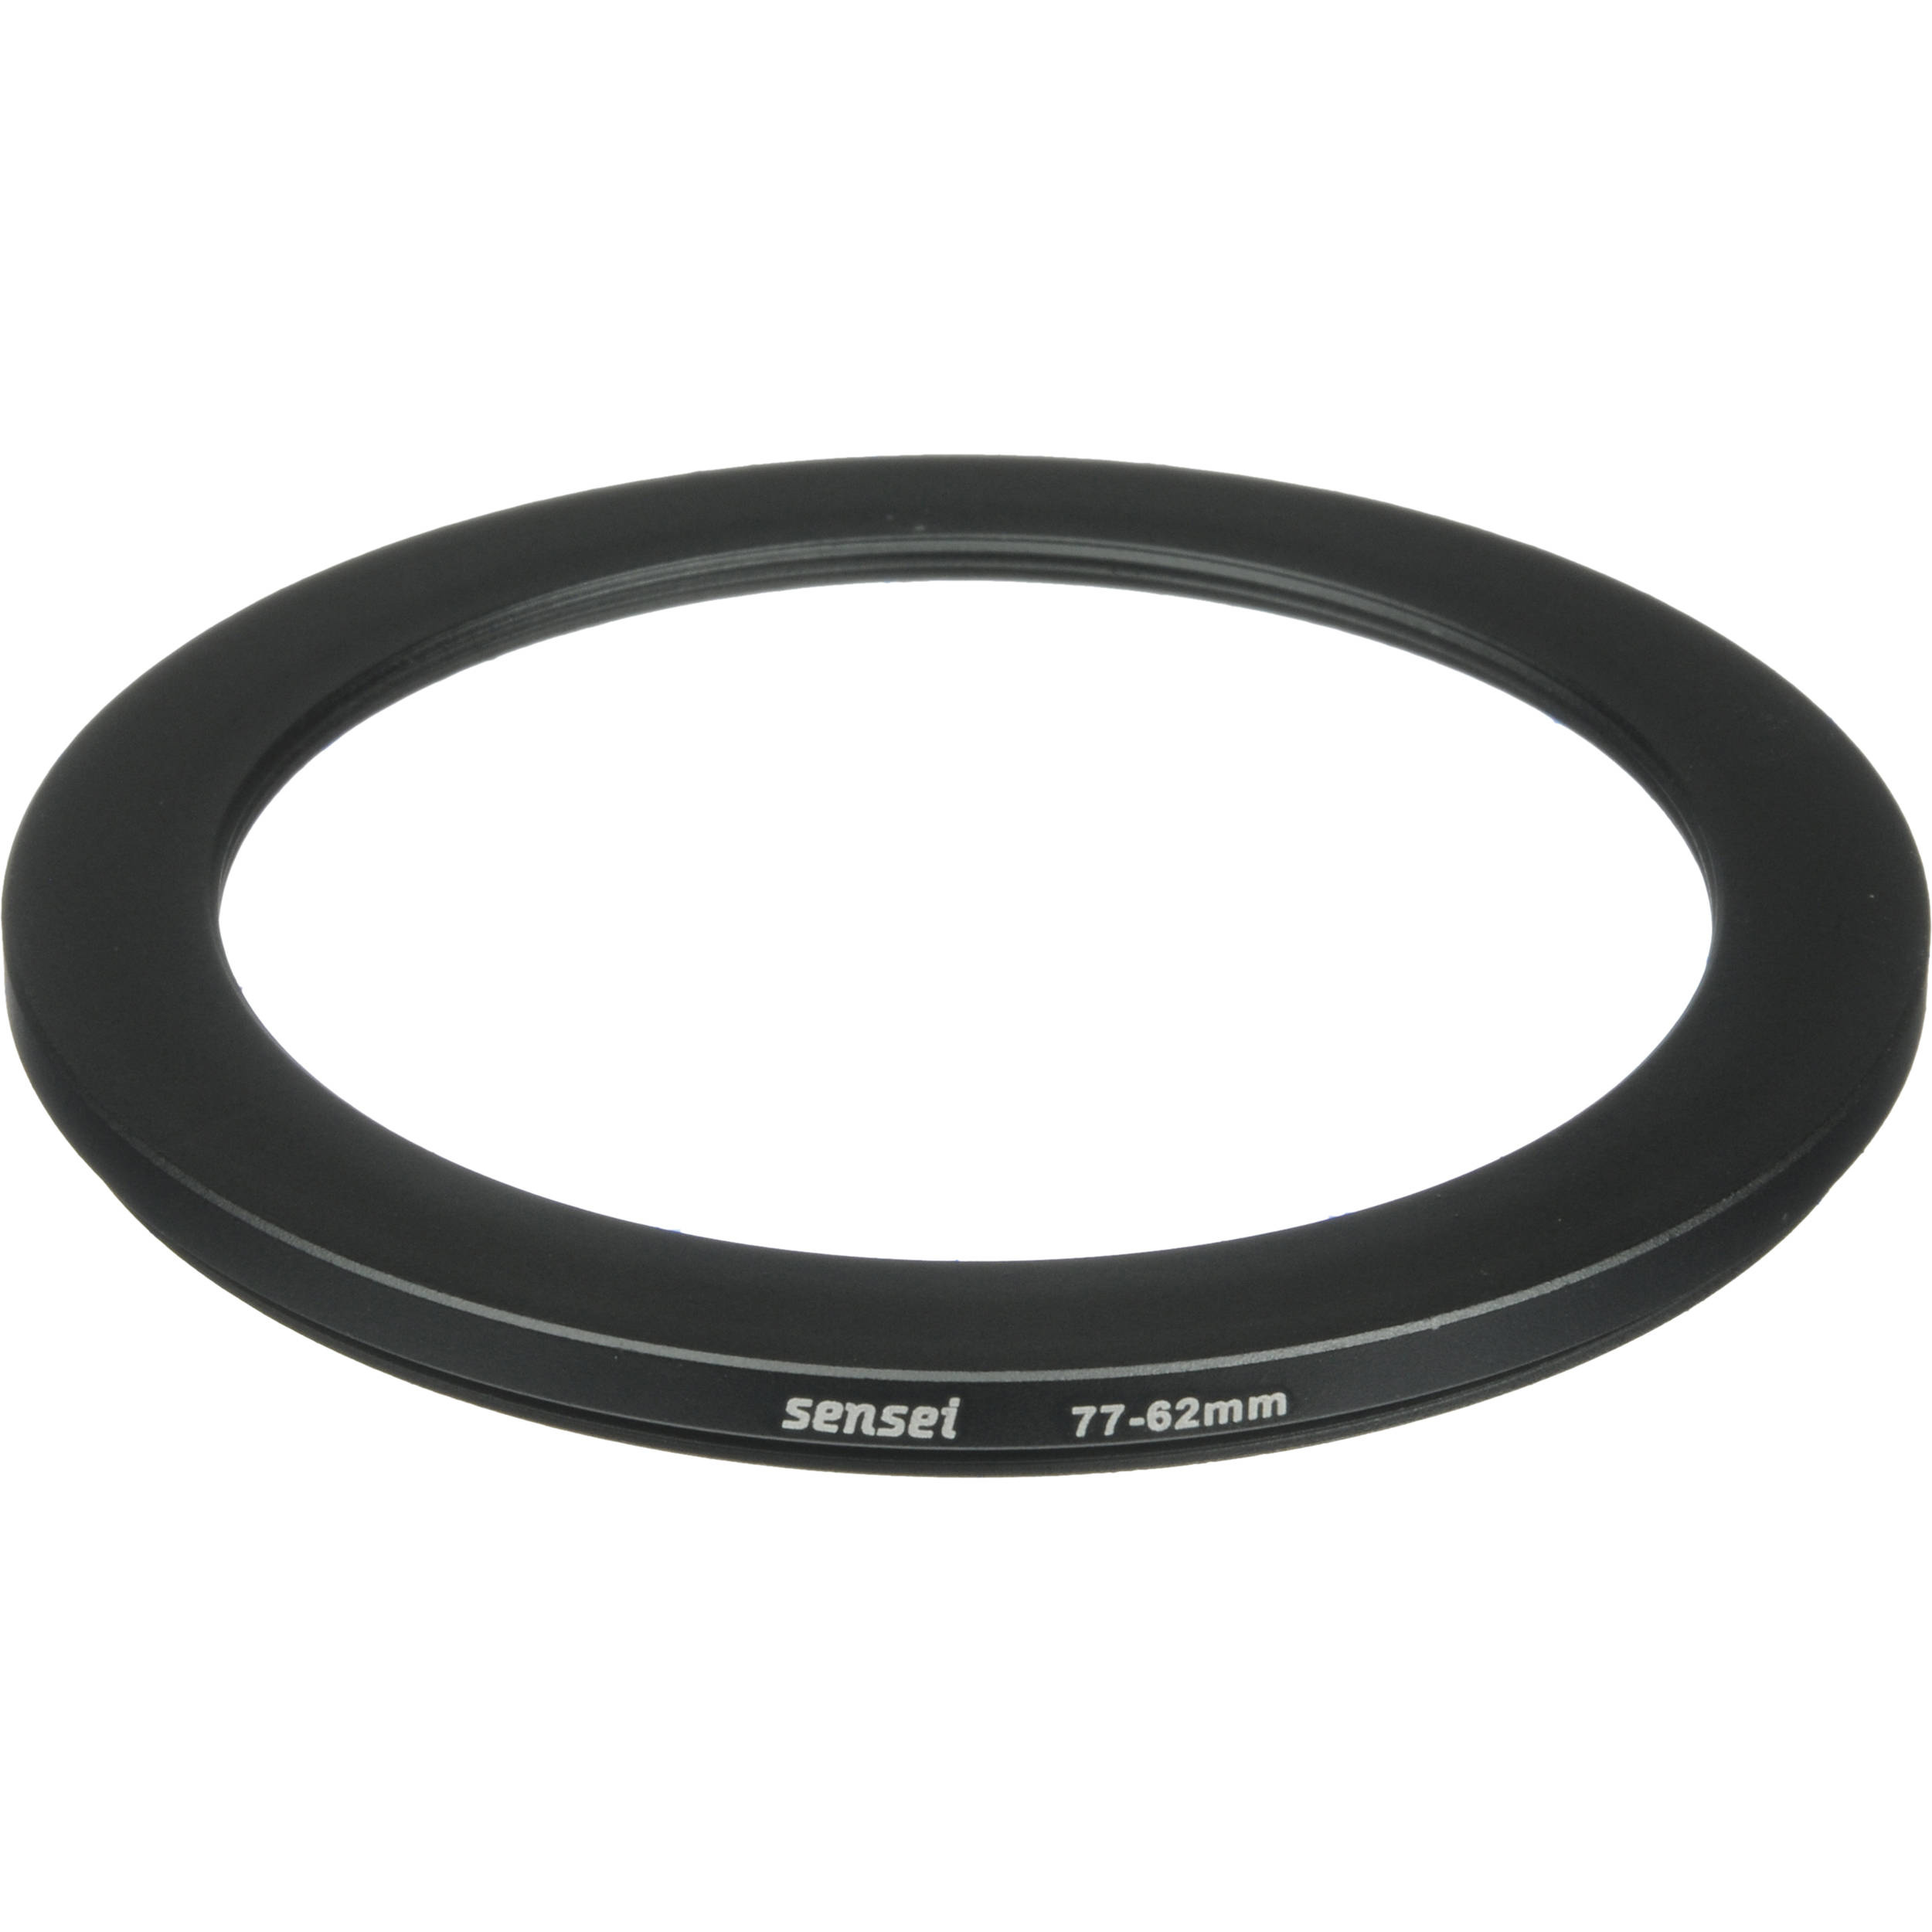 Sensei 77-62mm Step-Down Ring